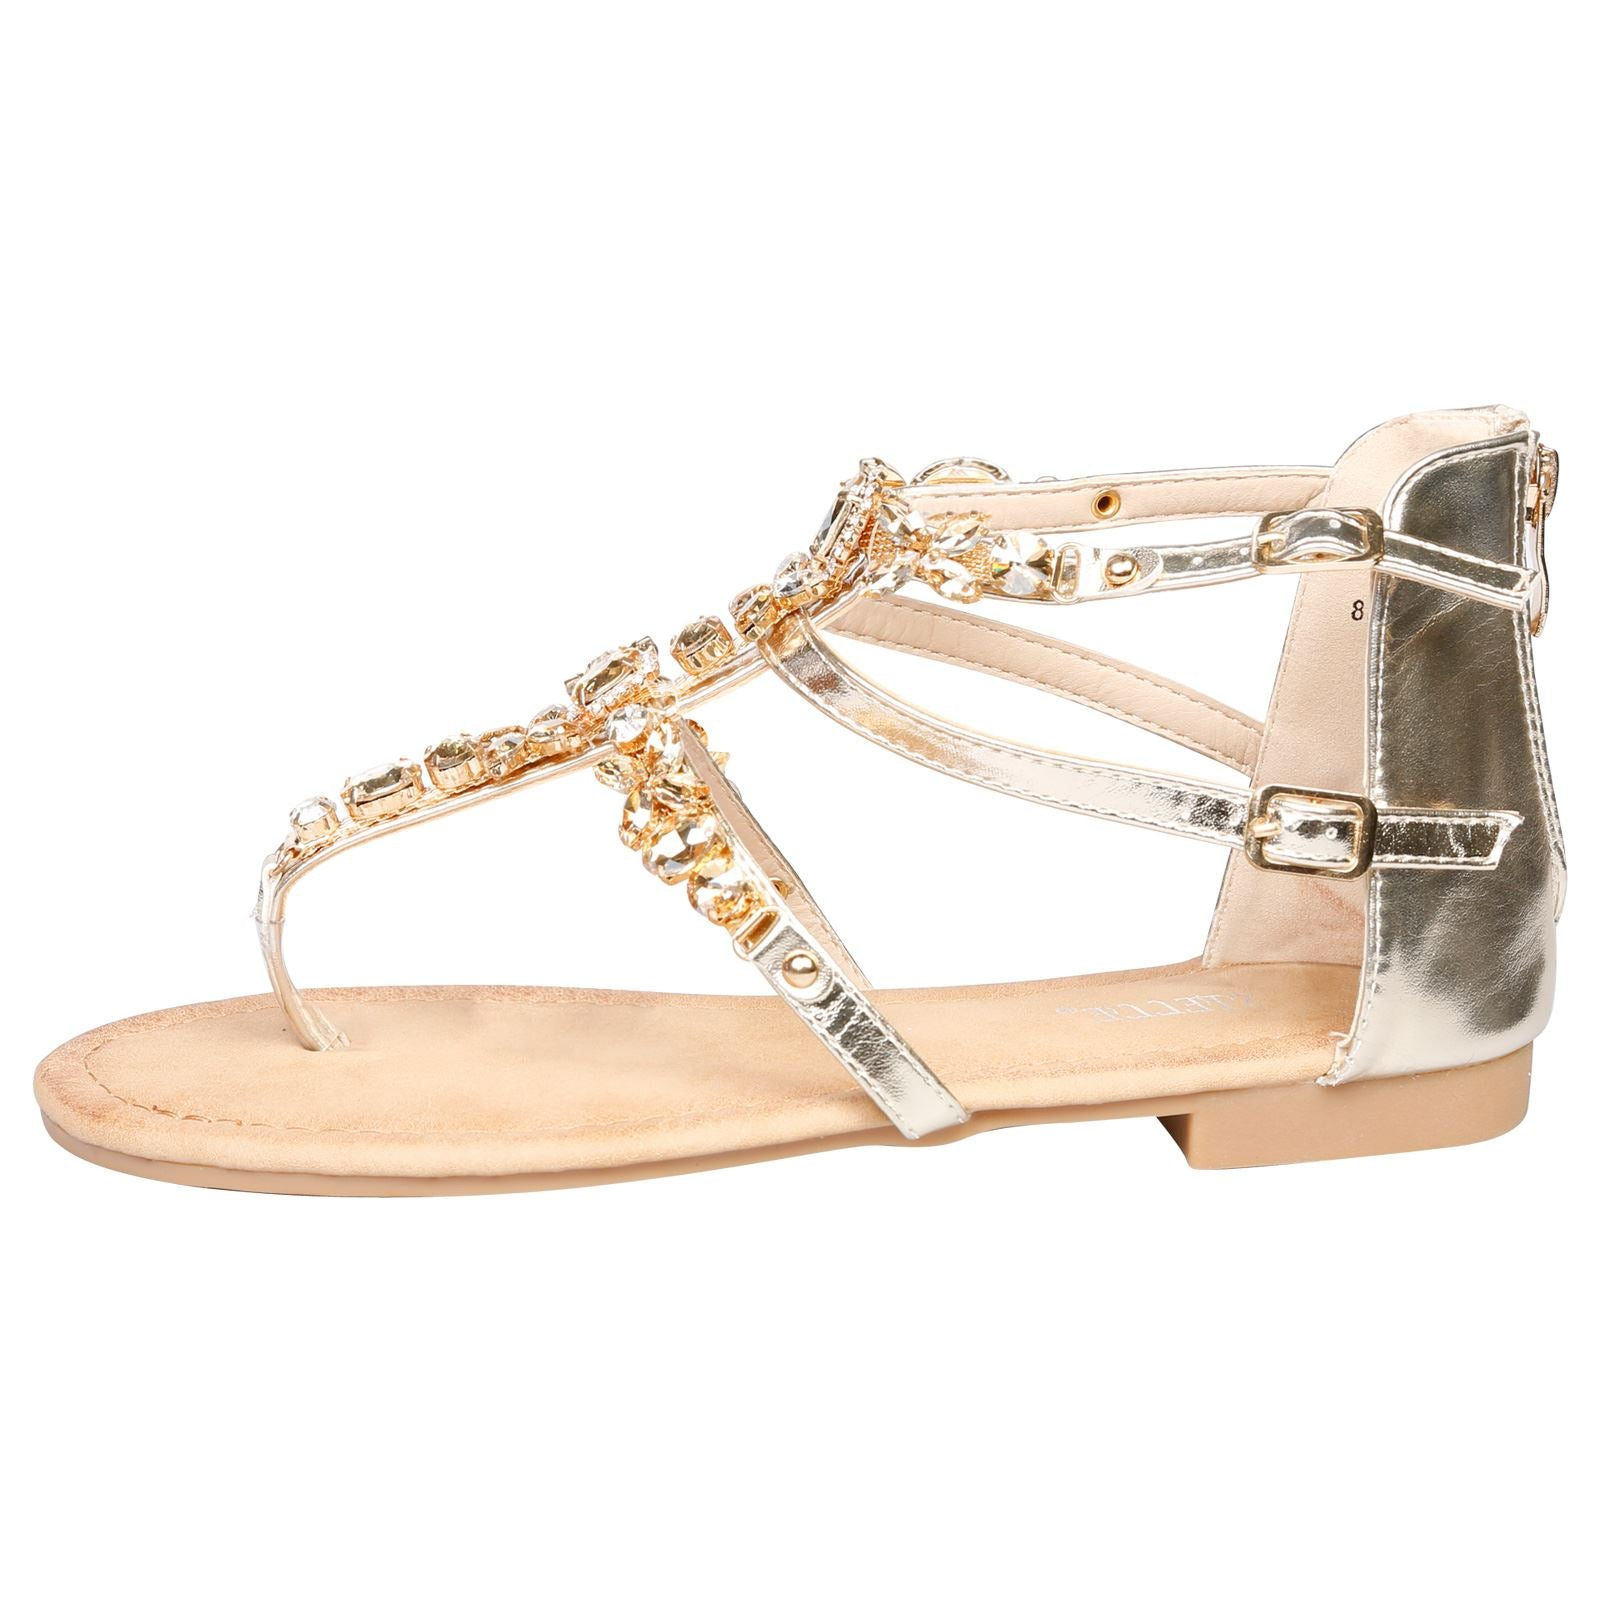 Celia Jewelled Flat Sandals in Gold - Feet First Fashion